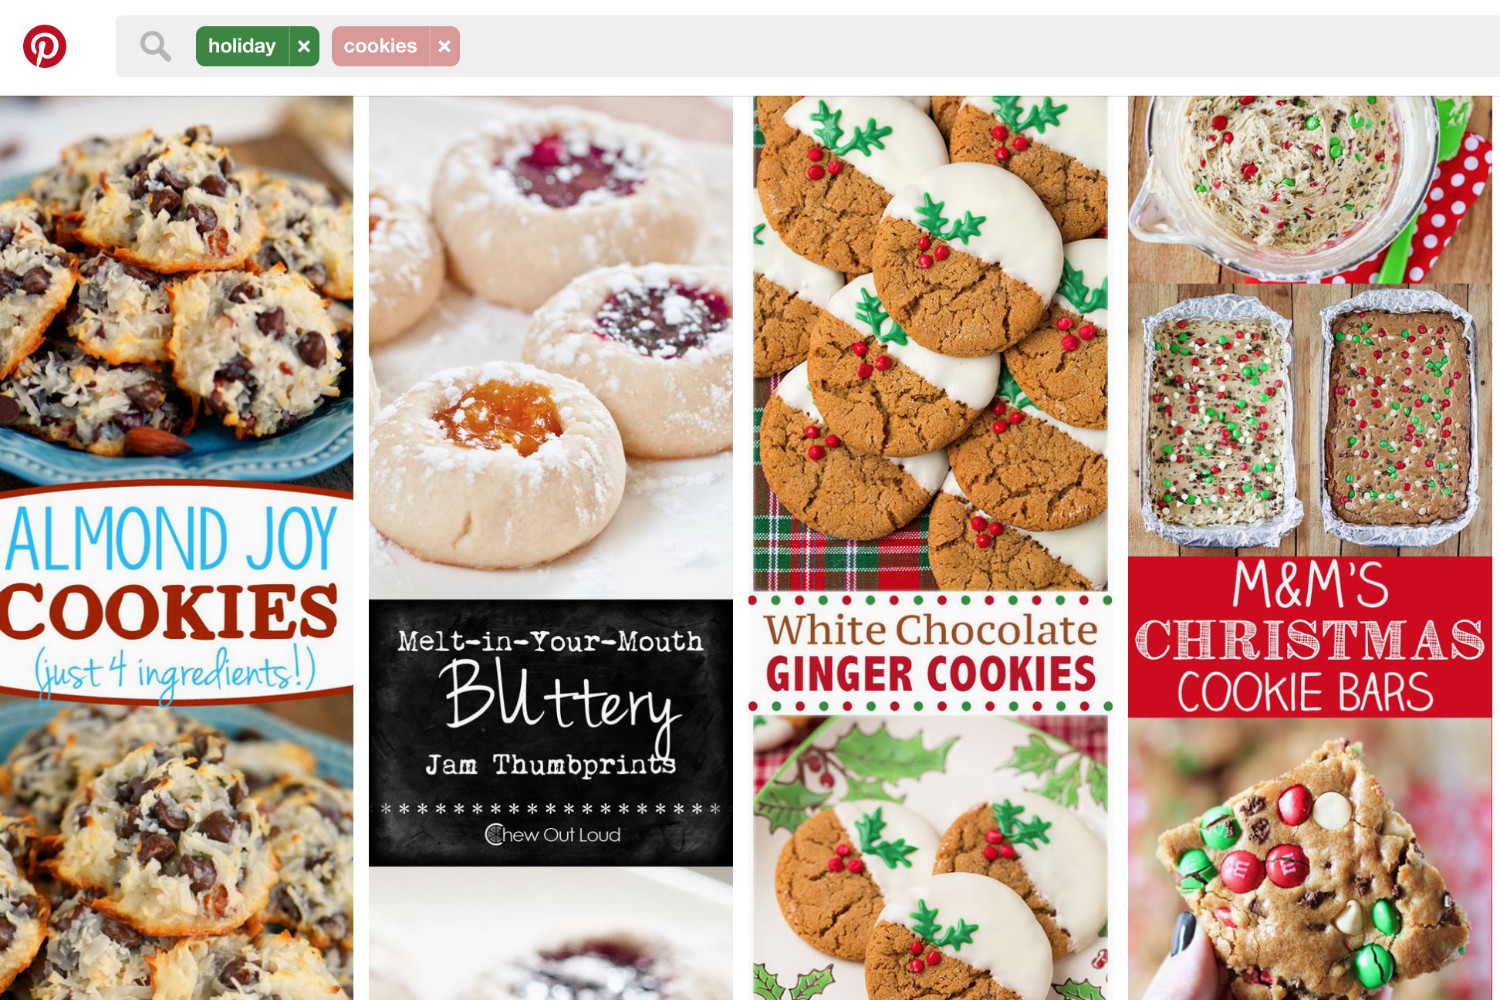 Pinterest Christmas Cookies  What is Pinterest's most popular Christmas cookie recipe